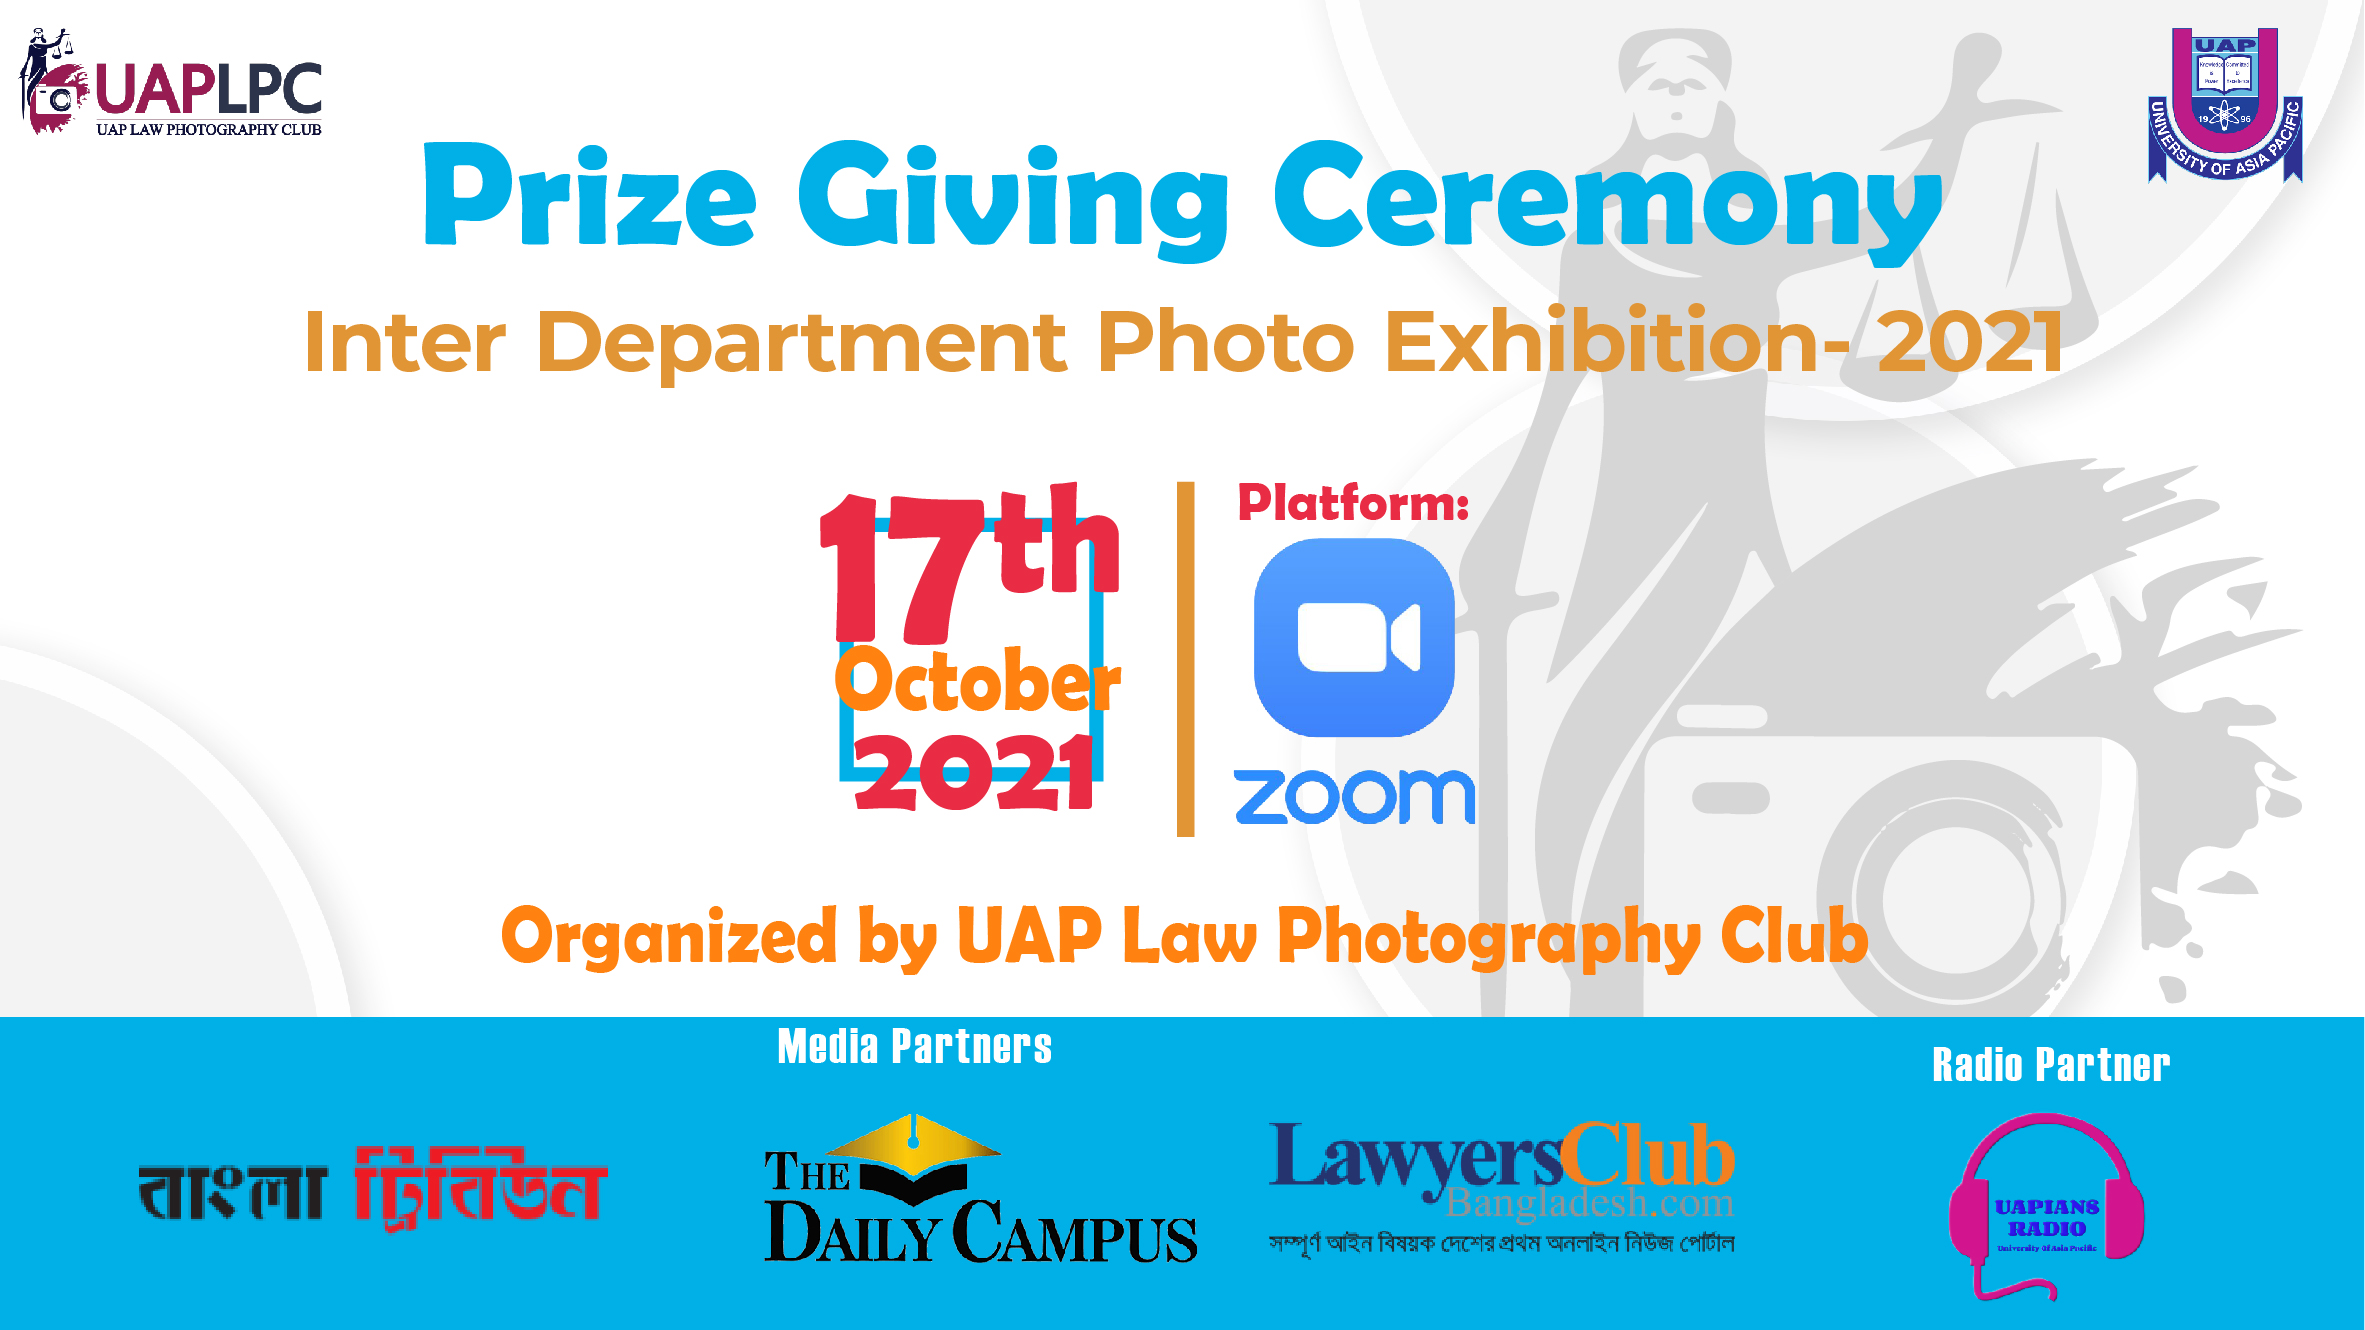 UAP Law Photography Club Holds Prize Giving Ceremony